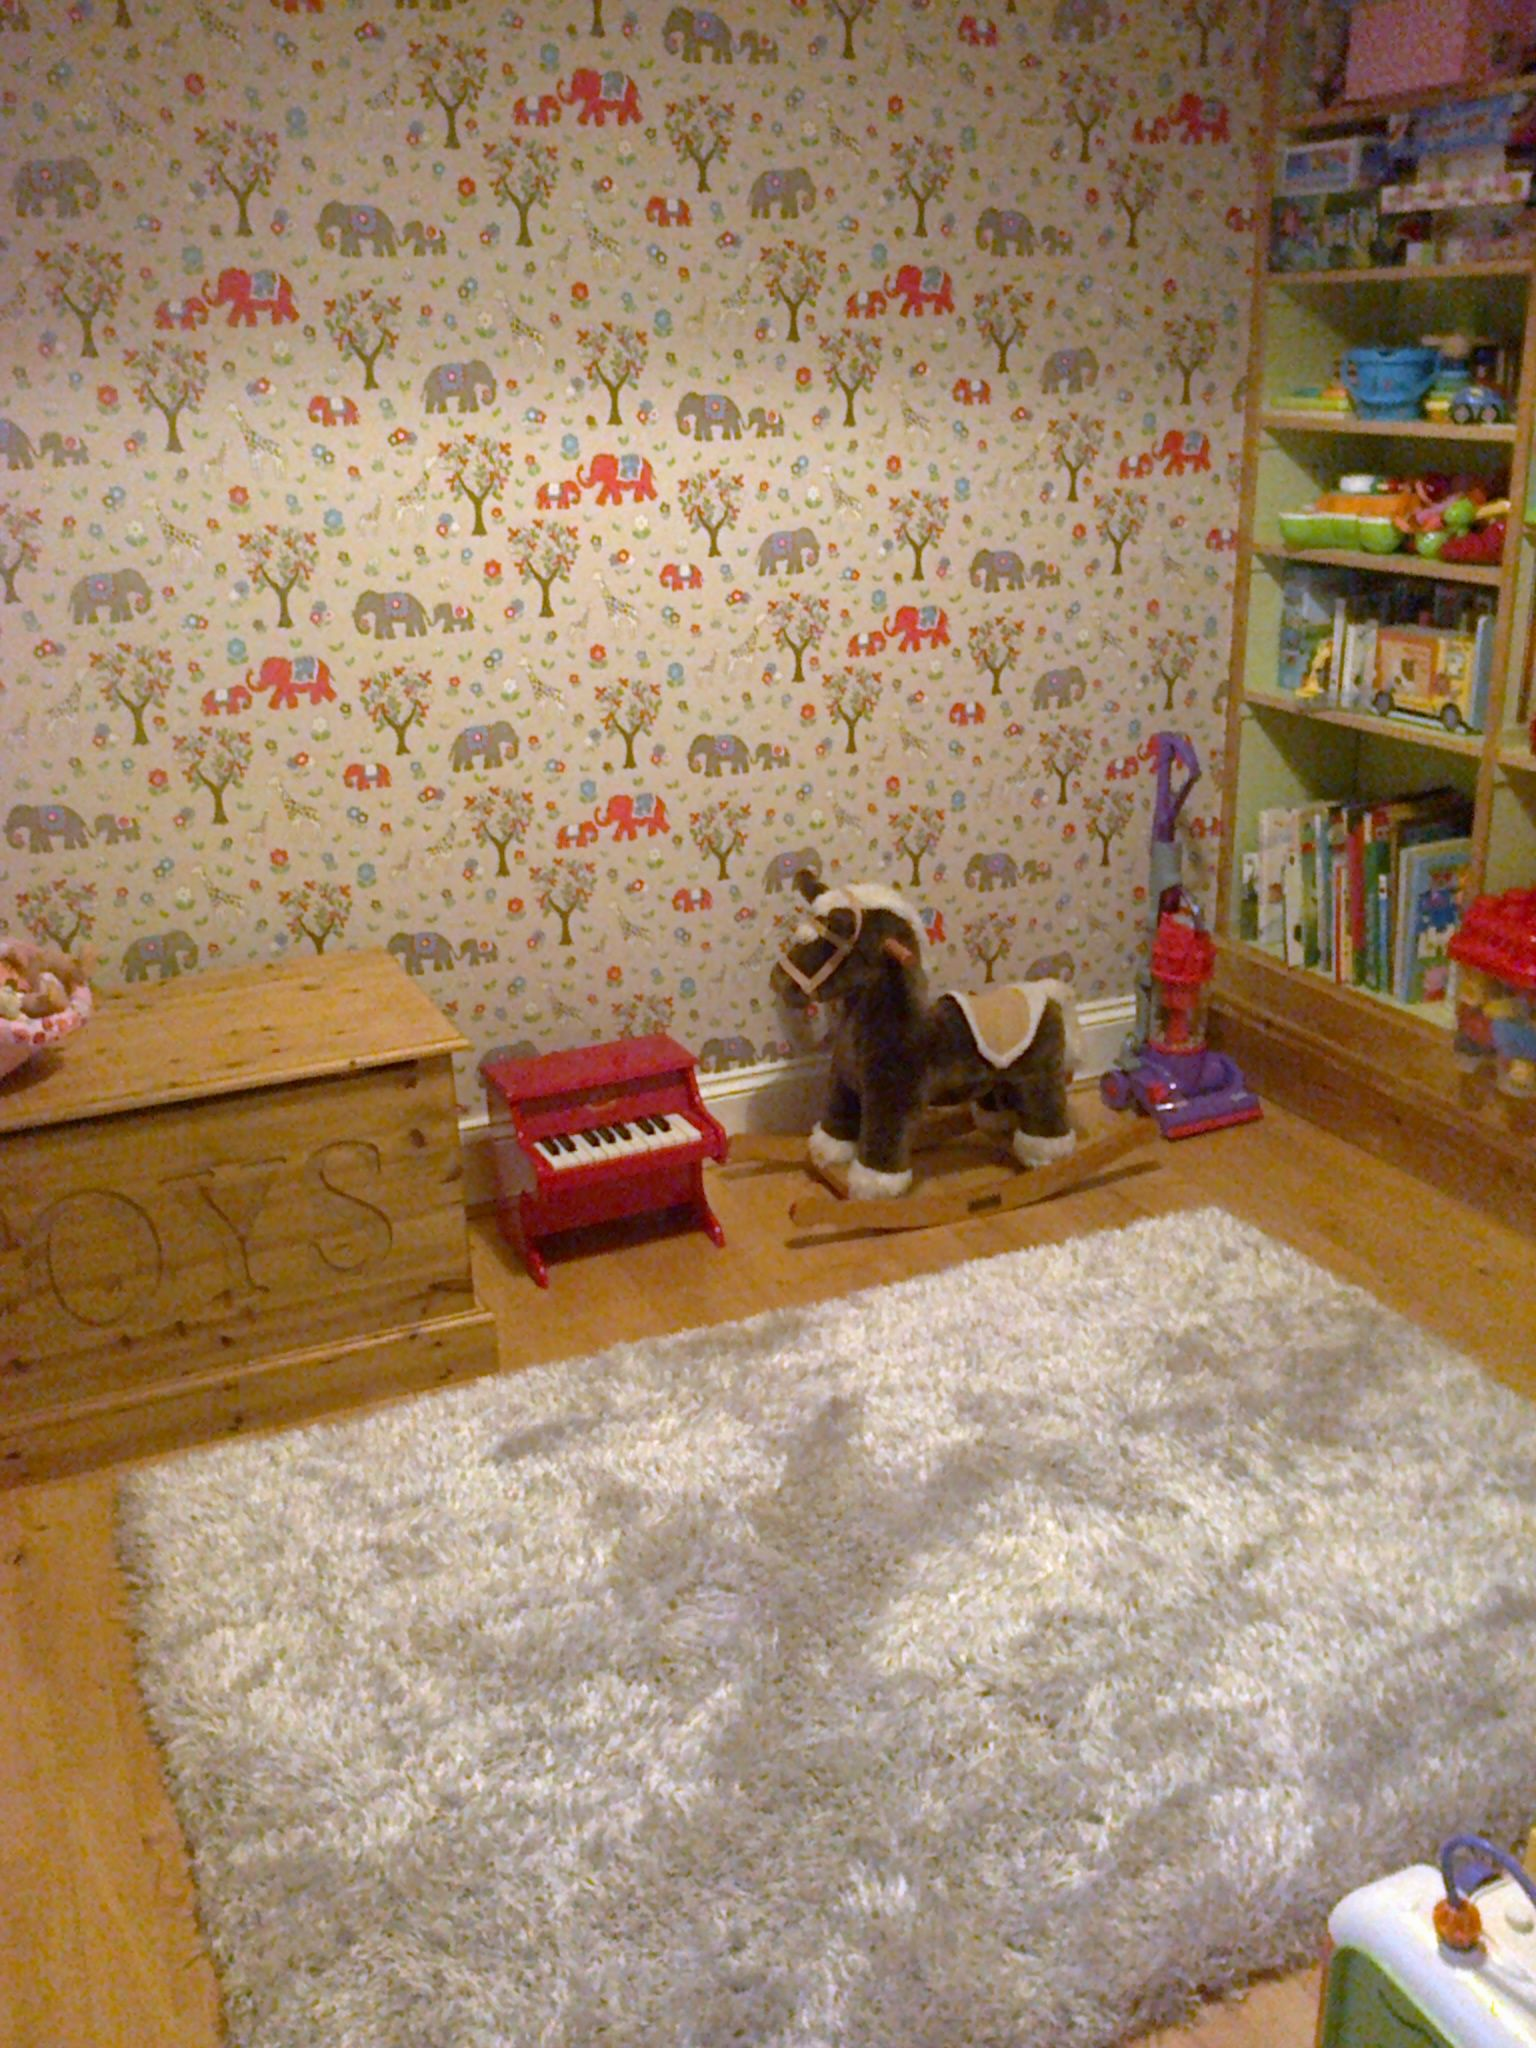 Cath Kidston Circus Elephant Wallpaper In The Playroom